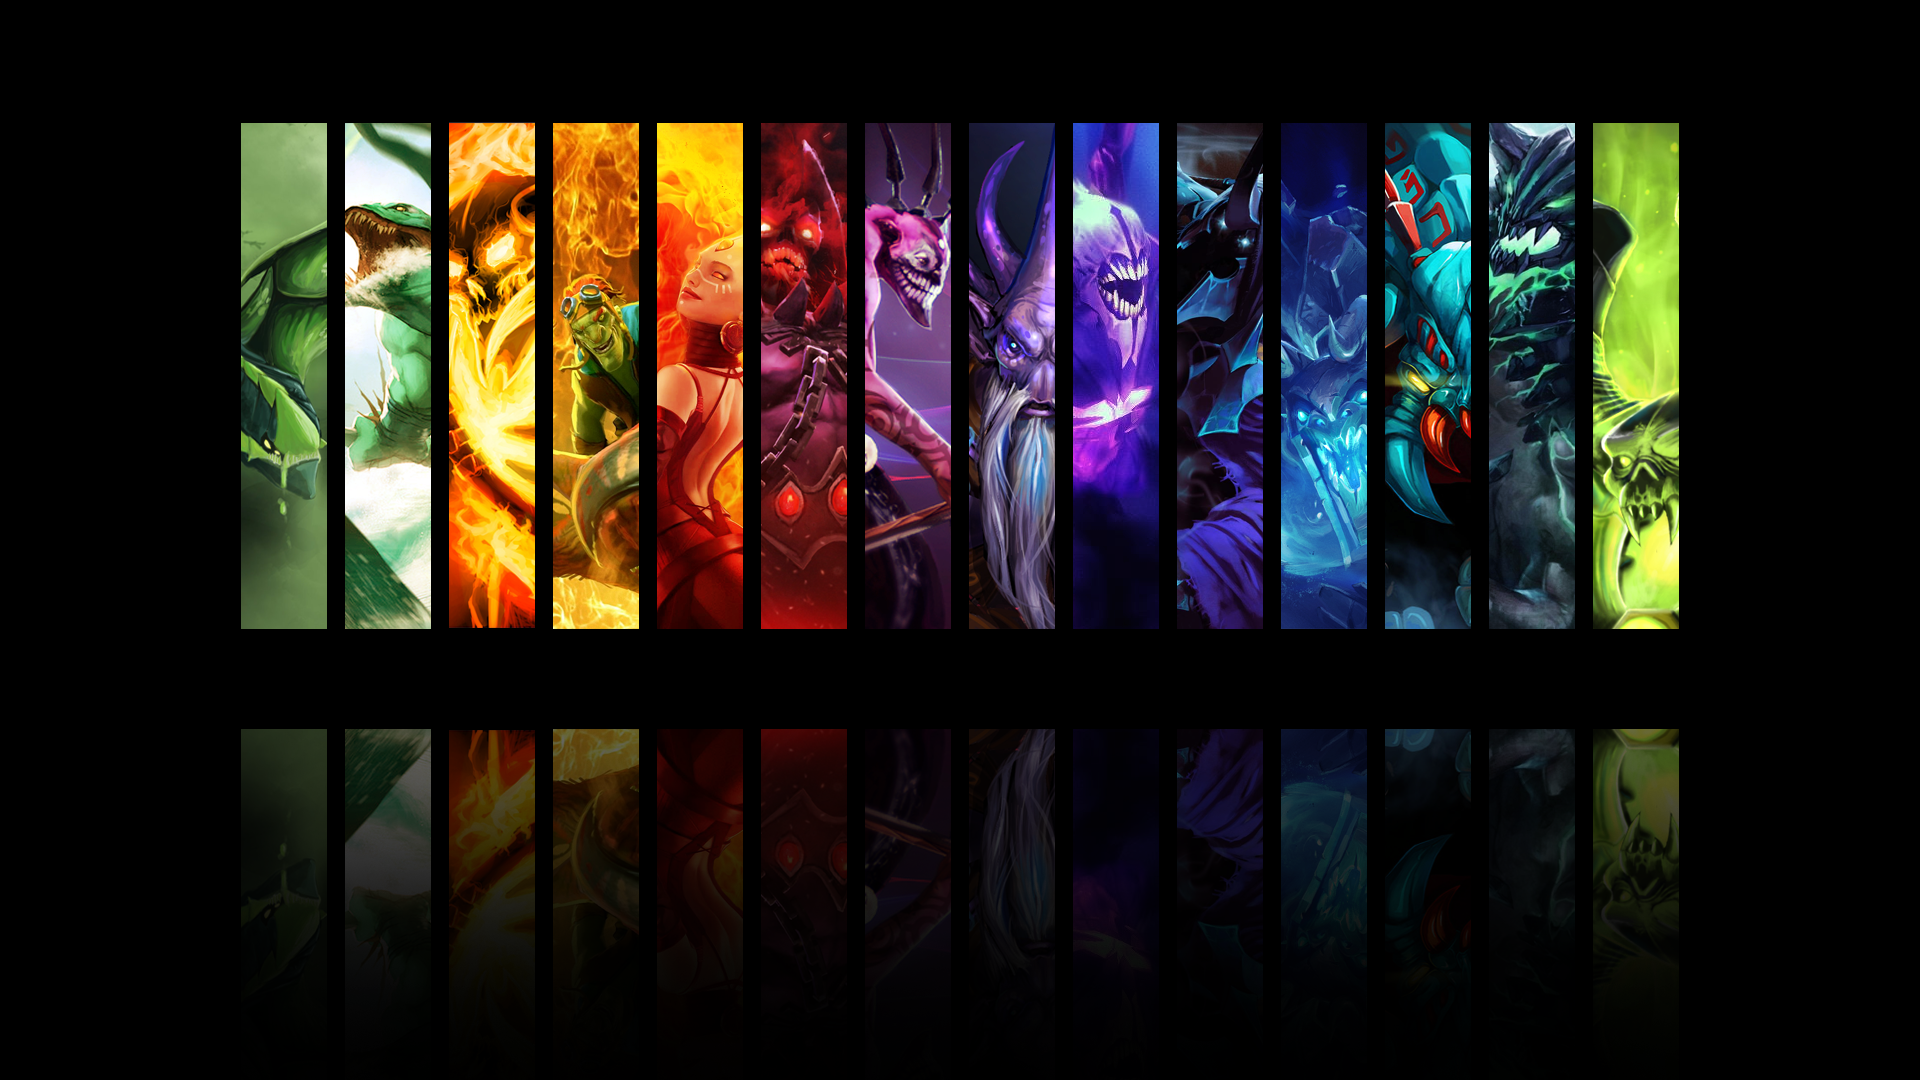 Dota 2 Full Hd Wallpaper And Background Image 1920x1080